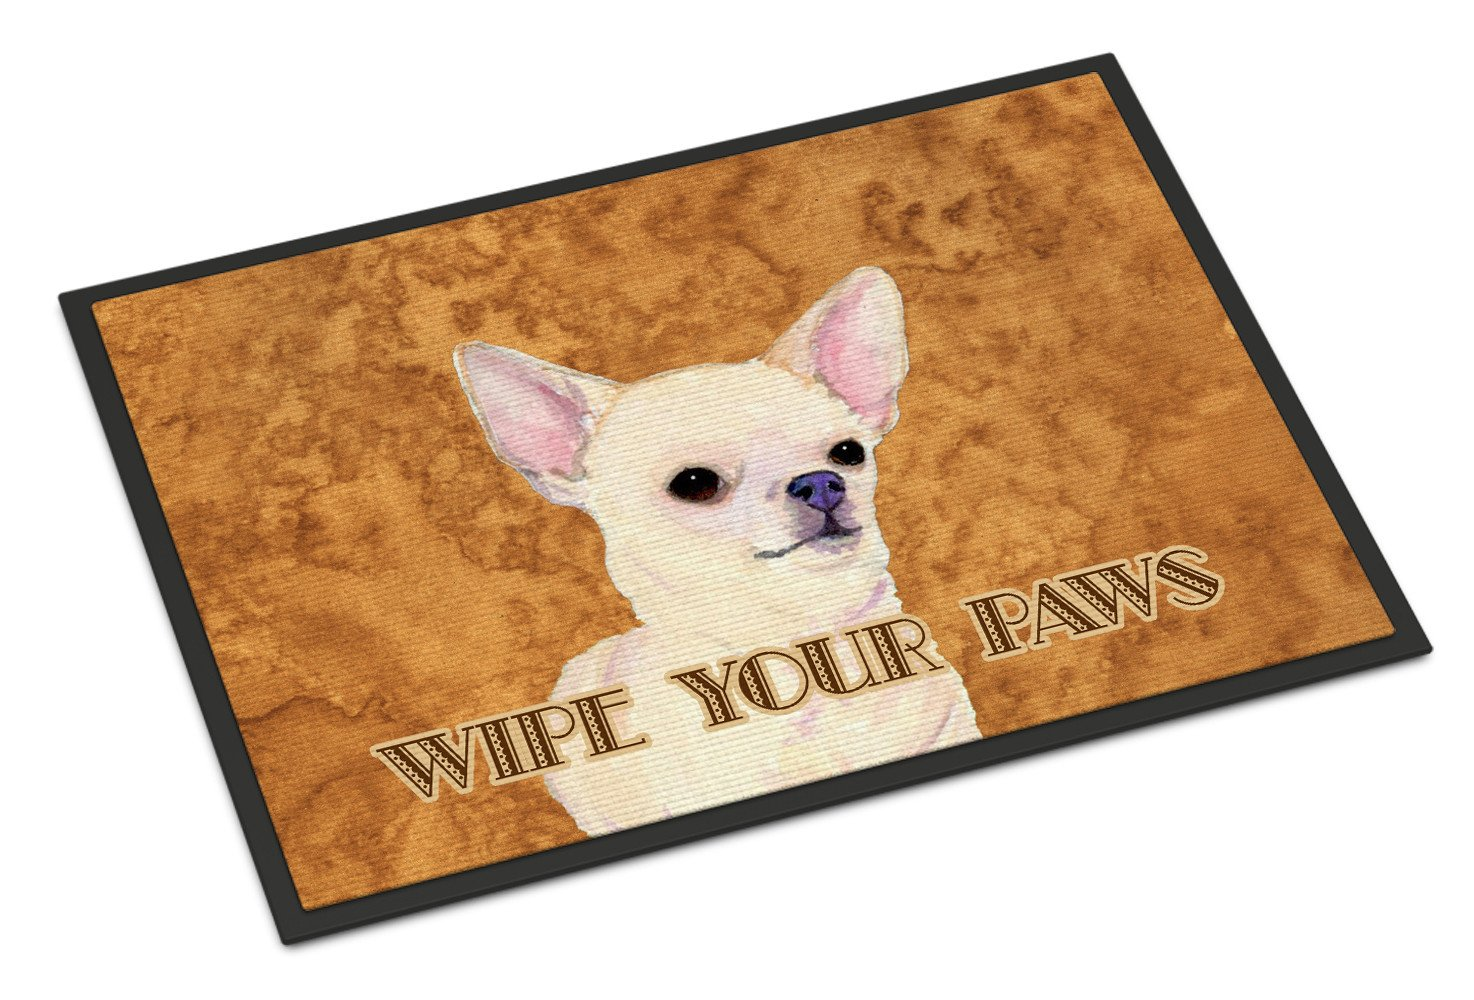 Chihuahua Wipe your Paws Indoor or Outdoor Mat 18x27 SS4902MAT - the-store.com